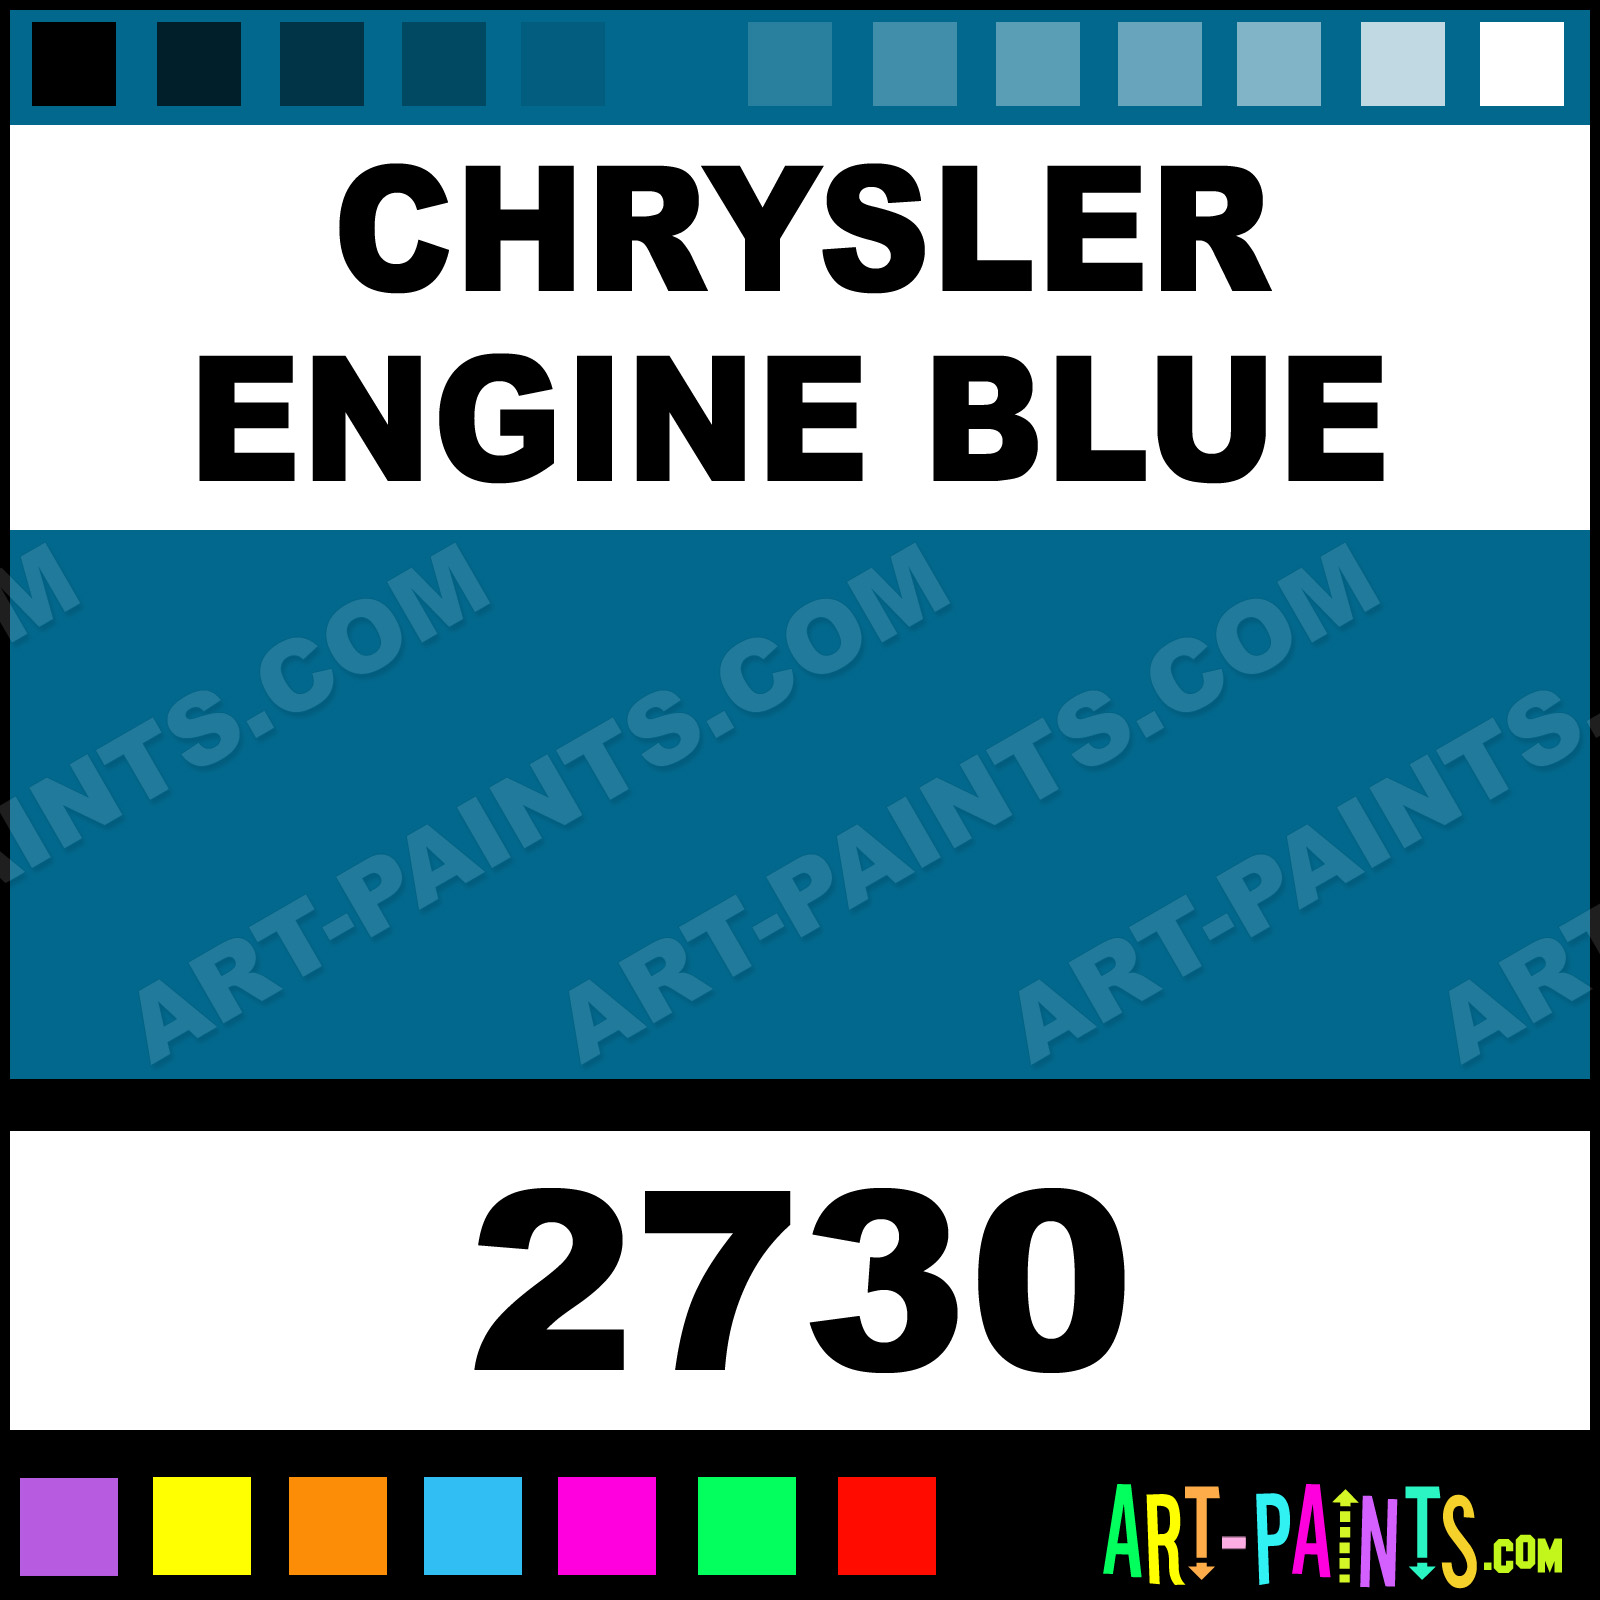 Chrysler Engine Blue Model Acrylic Paints 2730